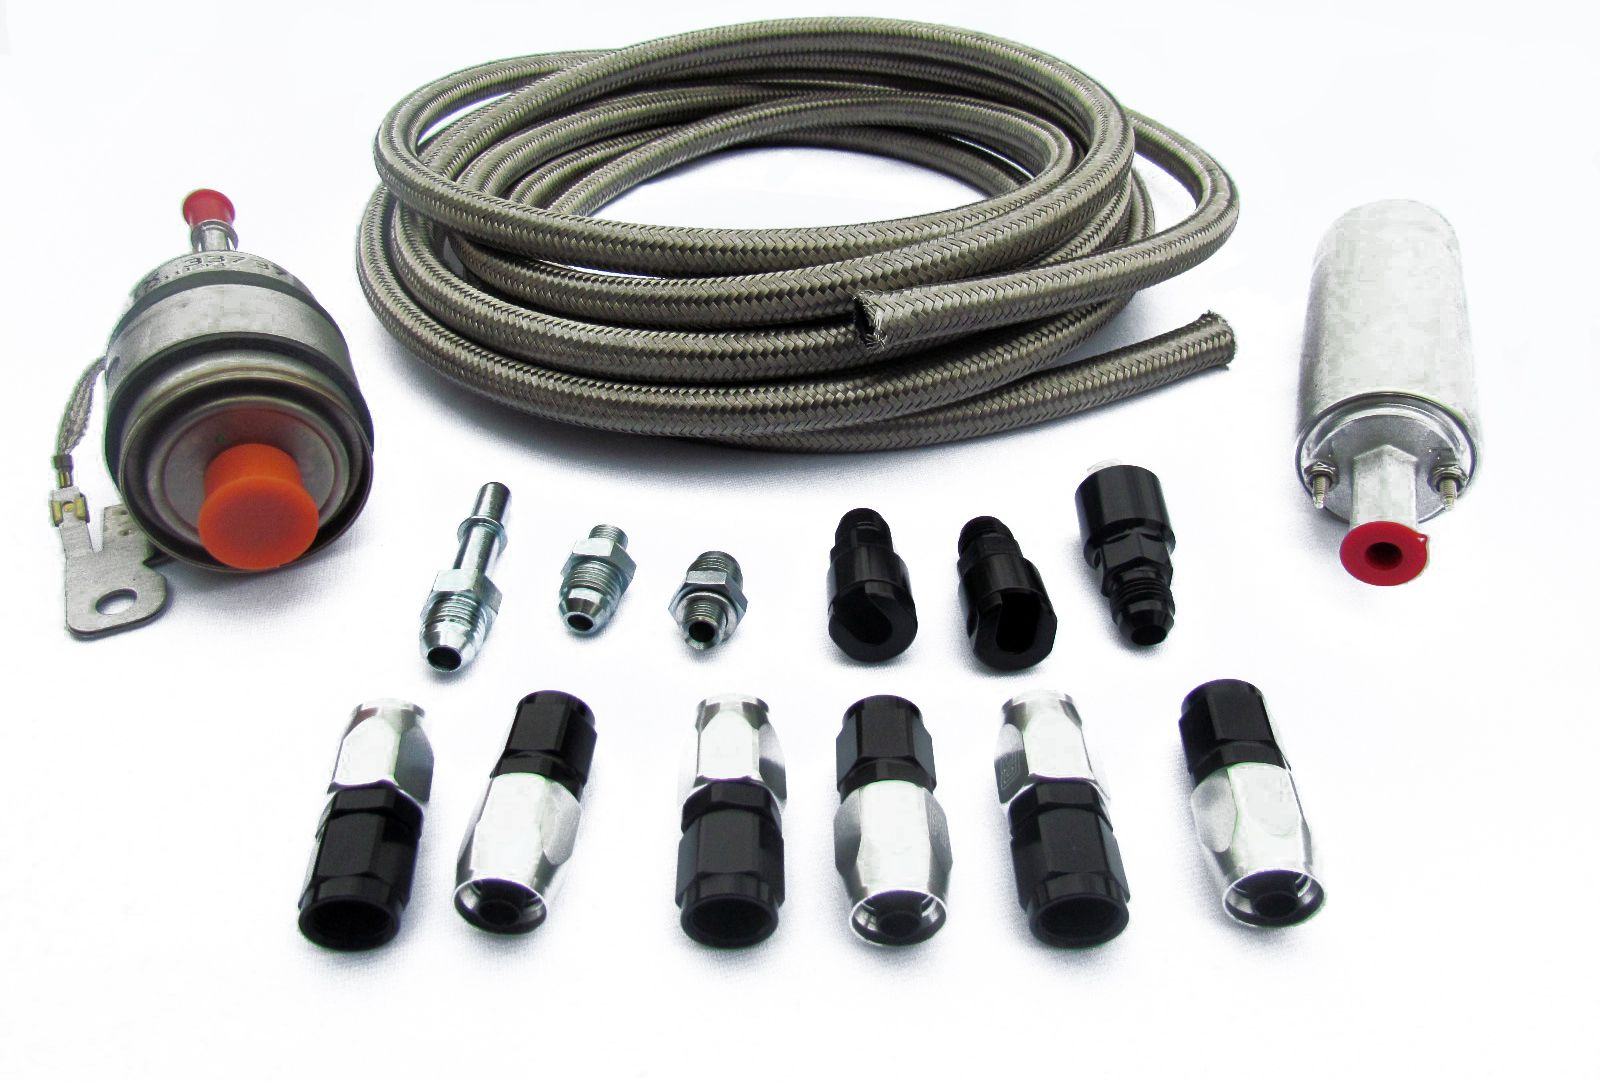 ls vortec external fuel pump kit efi conversion kits ls1 ls2 ls3 swap wiring harness [ 1600 x 1082 Pixel ]